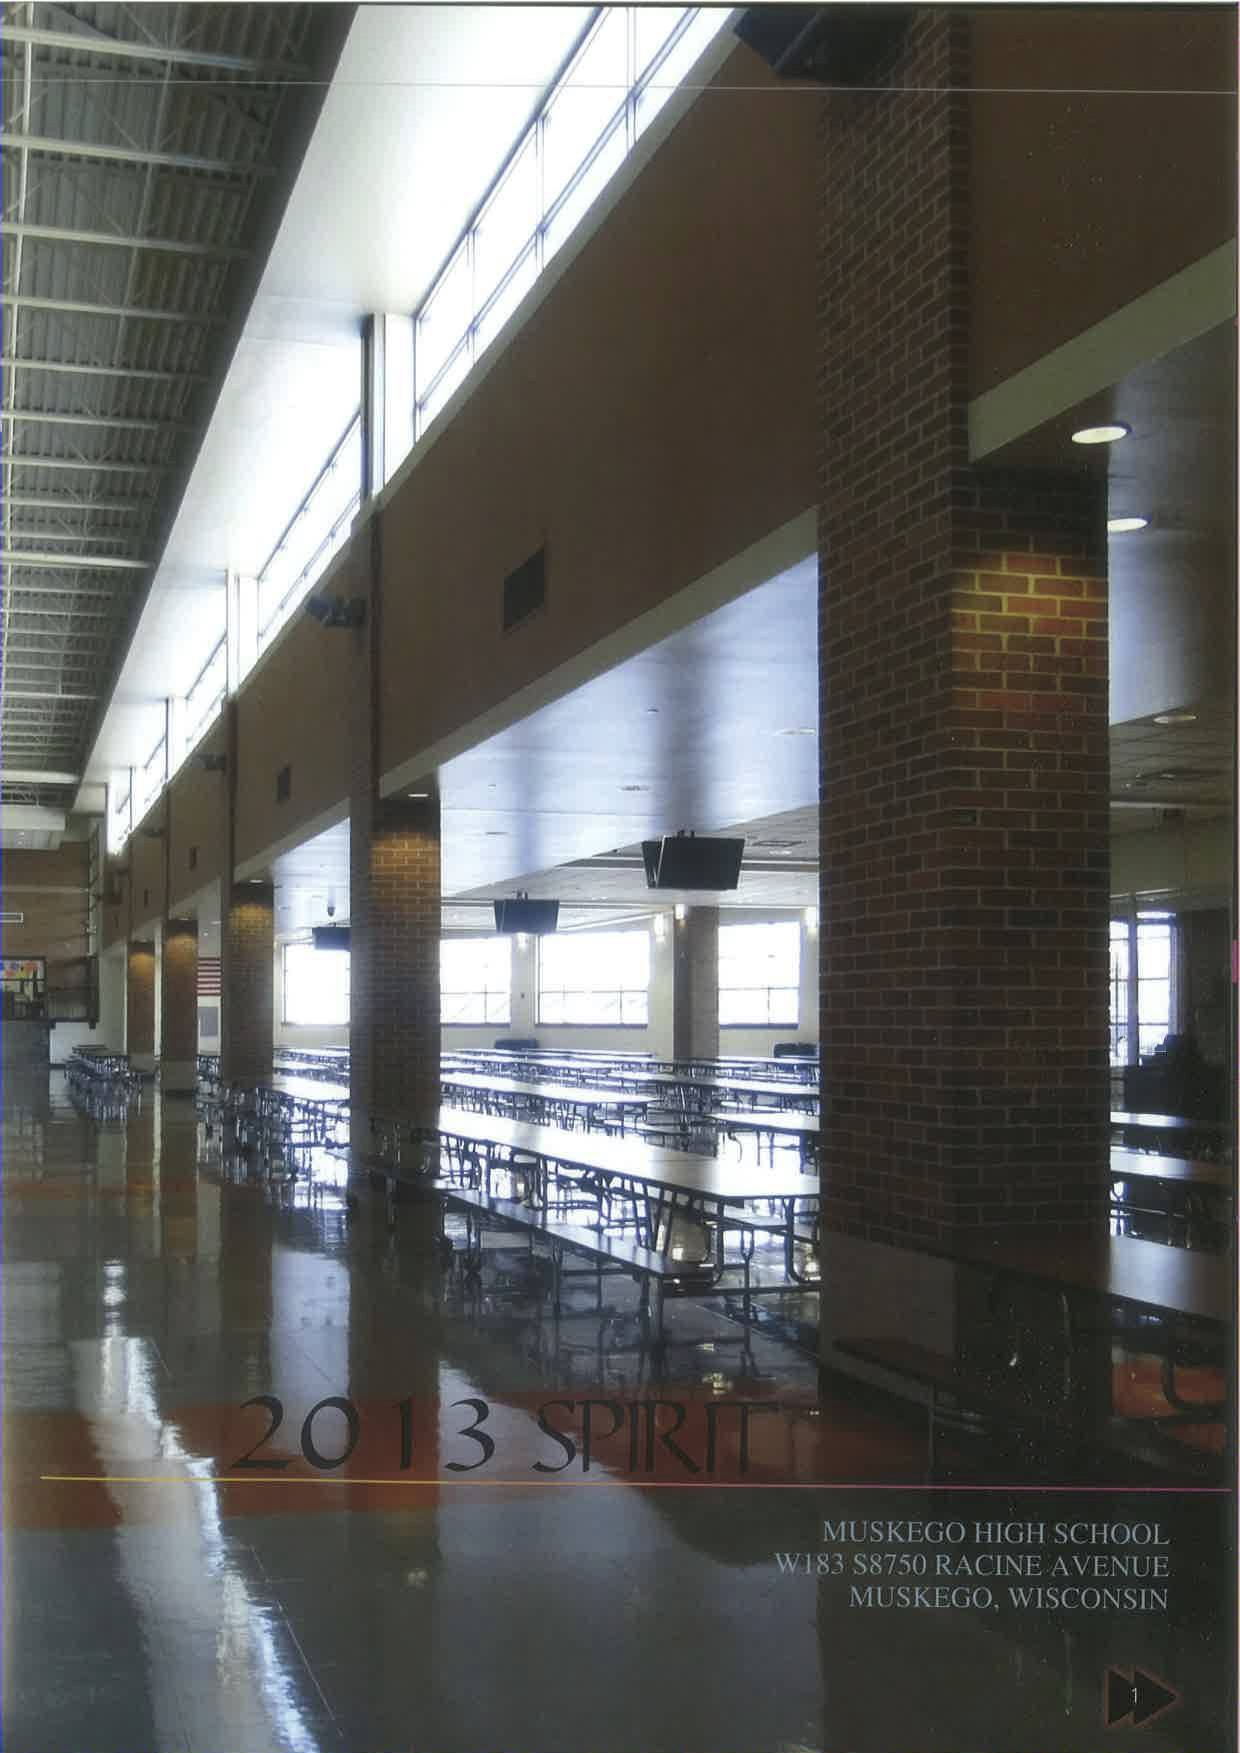 2013_Yearbook_1.jpg